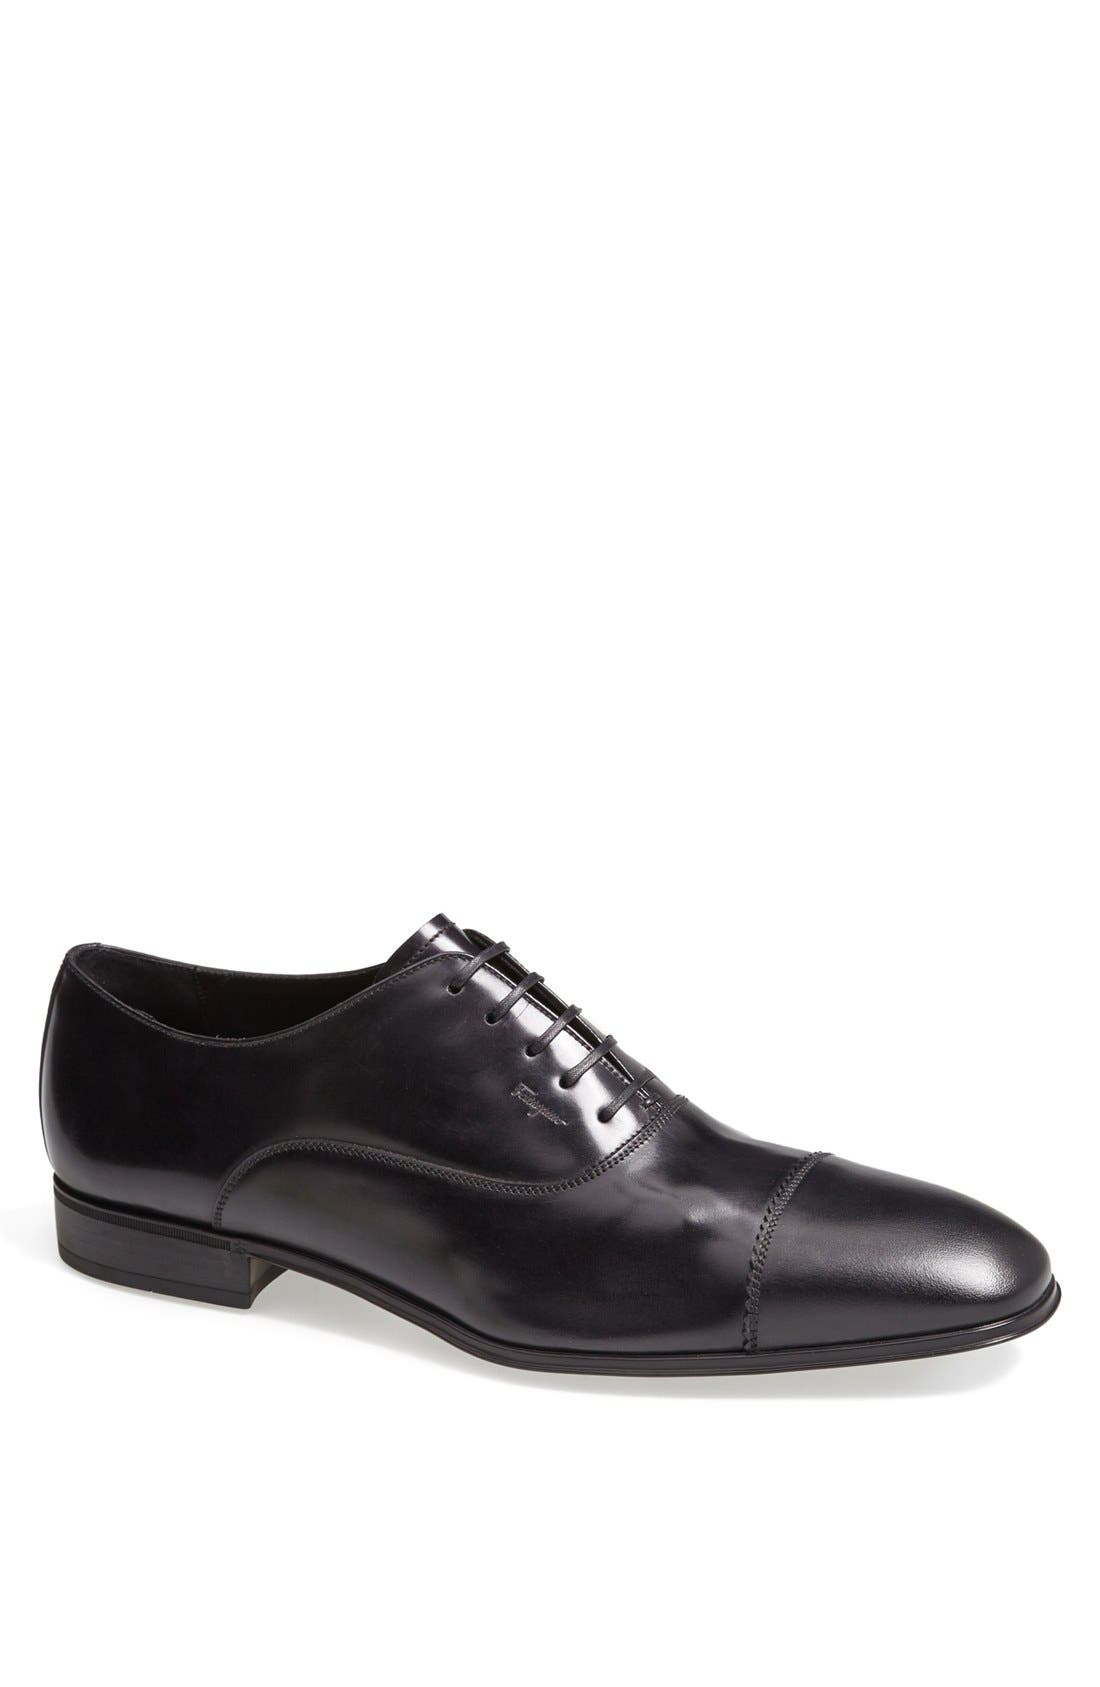 Alternate Image 1 Selected - Salvatore Ferragamo 'Remigio' Cap Toe Oxford (Men)